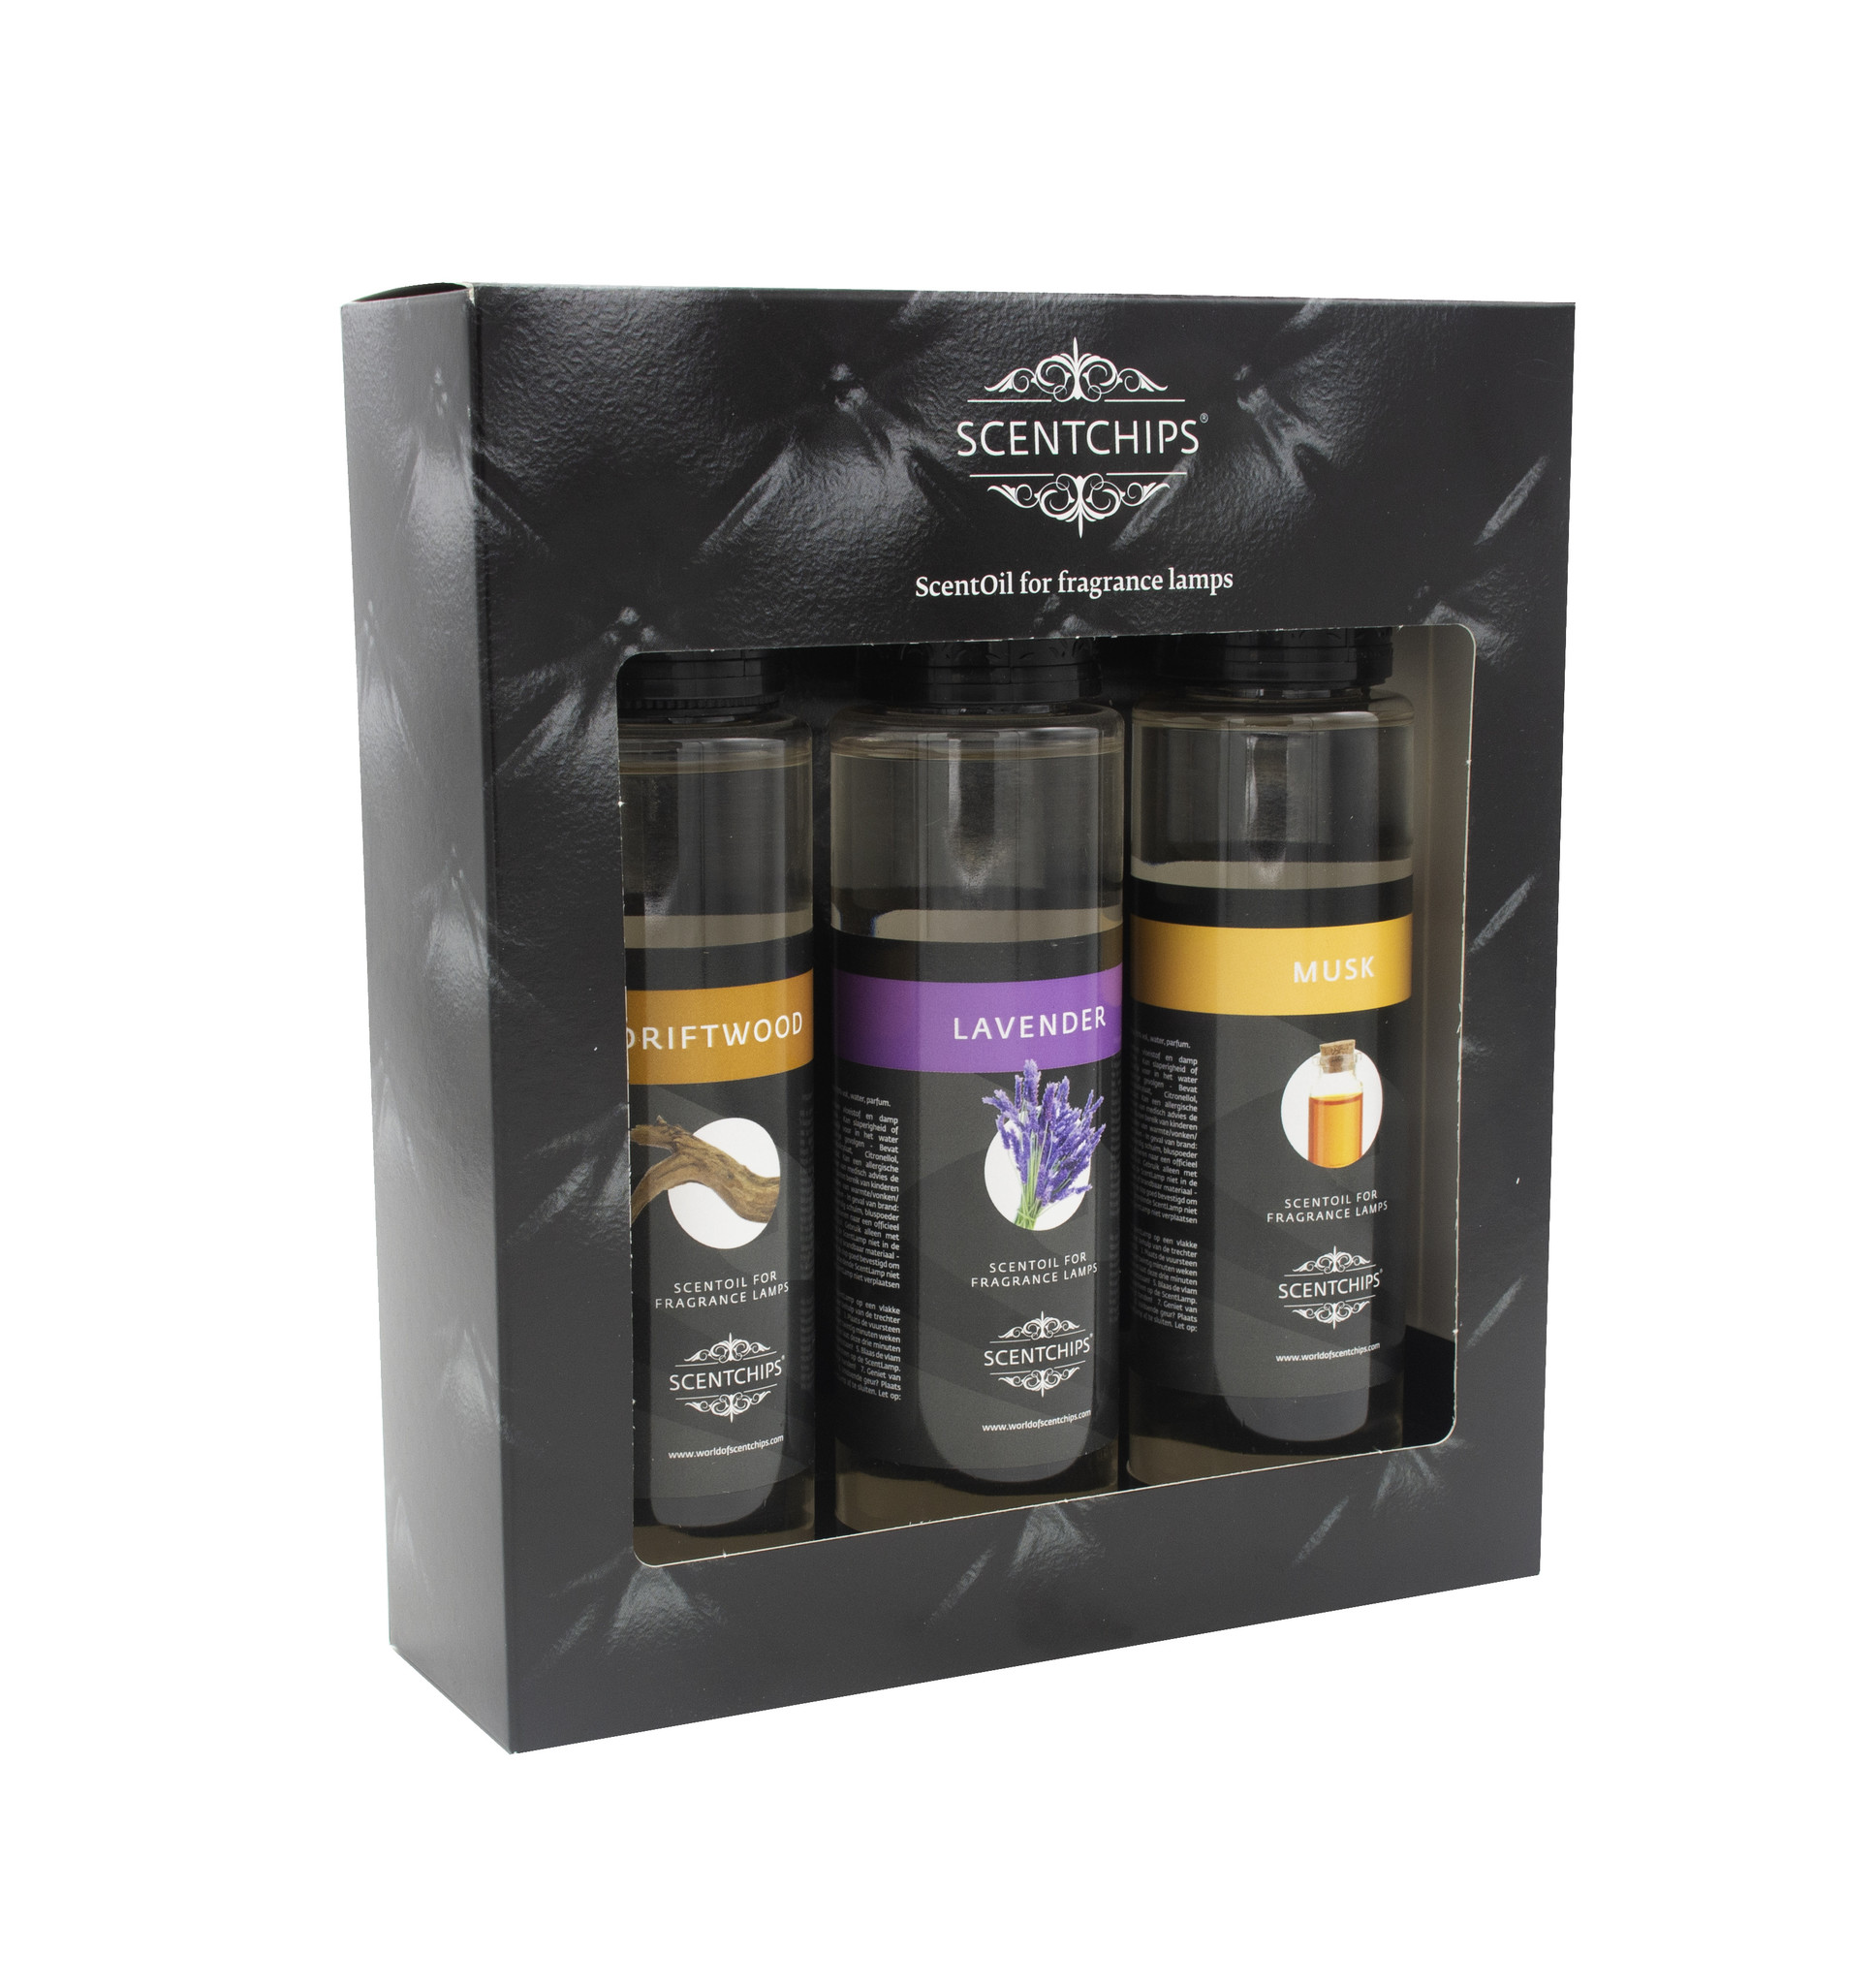 Giftset 3x 200ml-Driftwood-Lavendel-Musk  Cadeauset ScentGifts